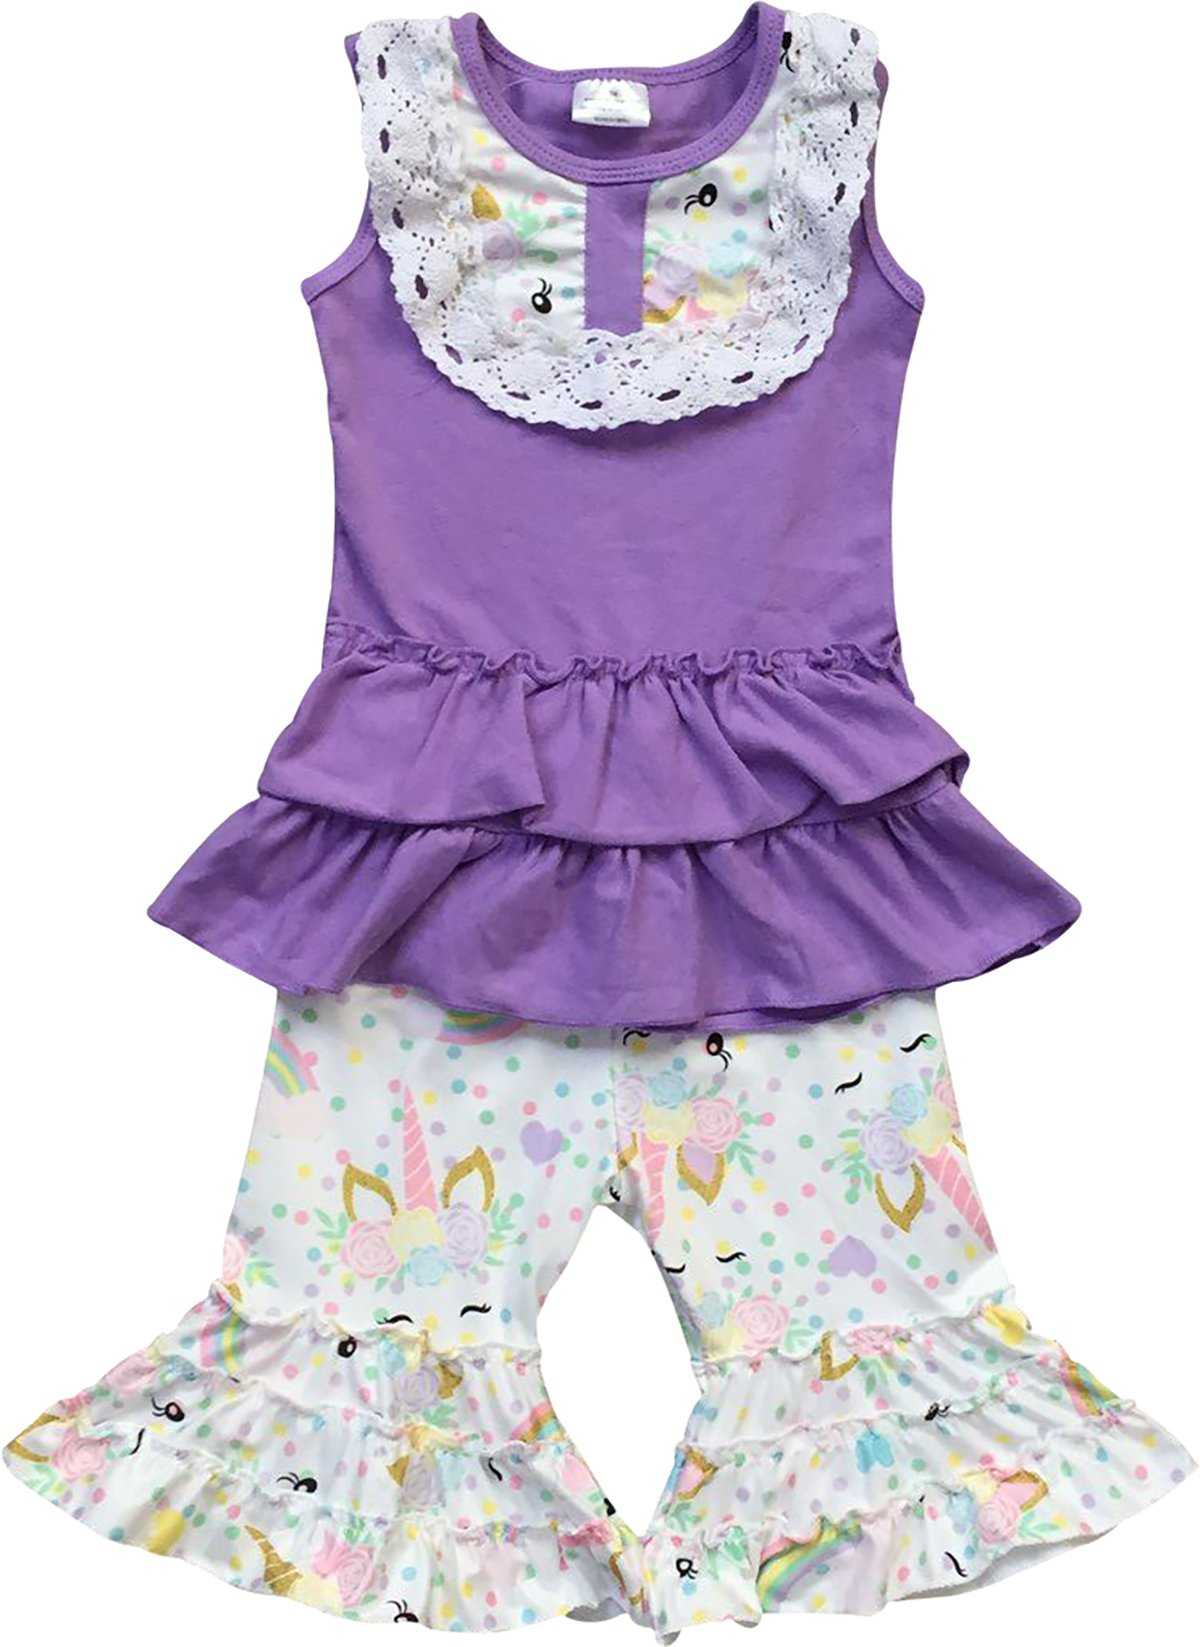 Little Girl Kids Sleeveless Unicorn Rainbow Summer Pants Set Lavender 6 XL 317709